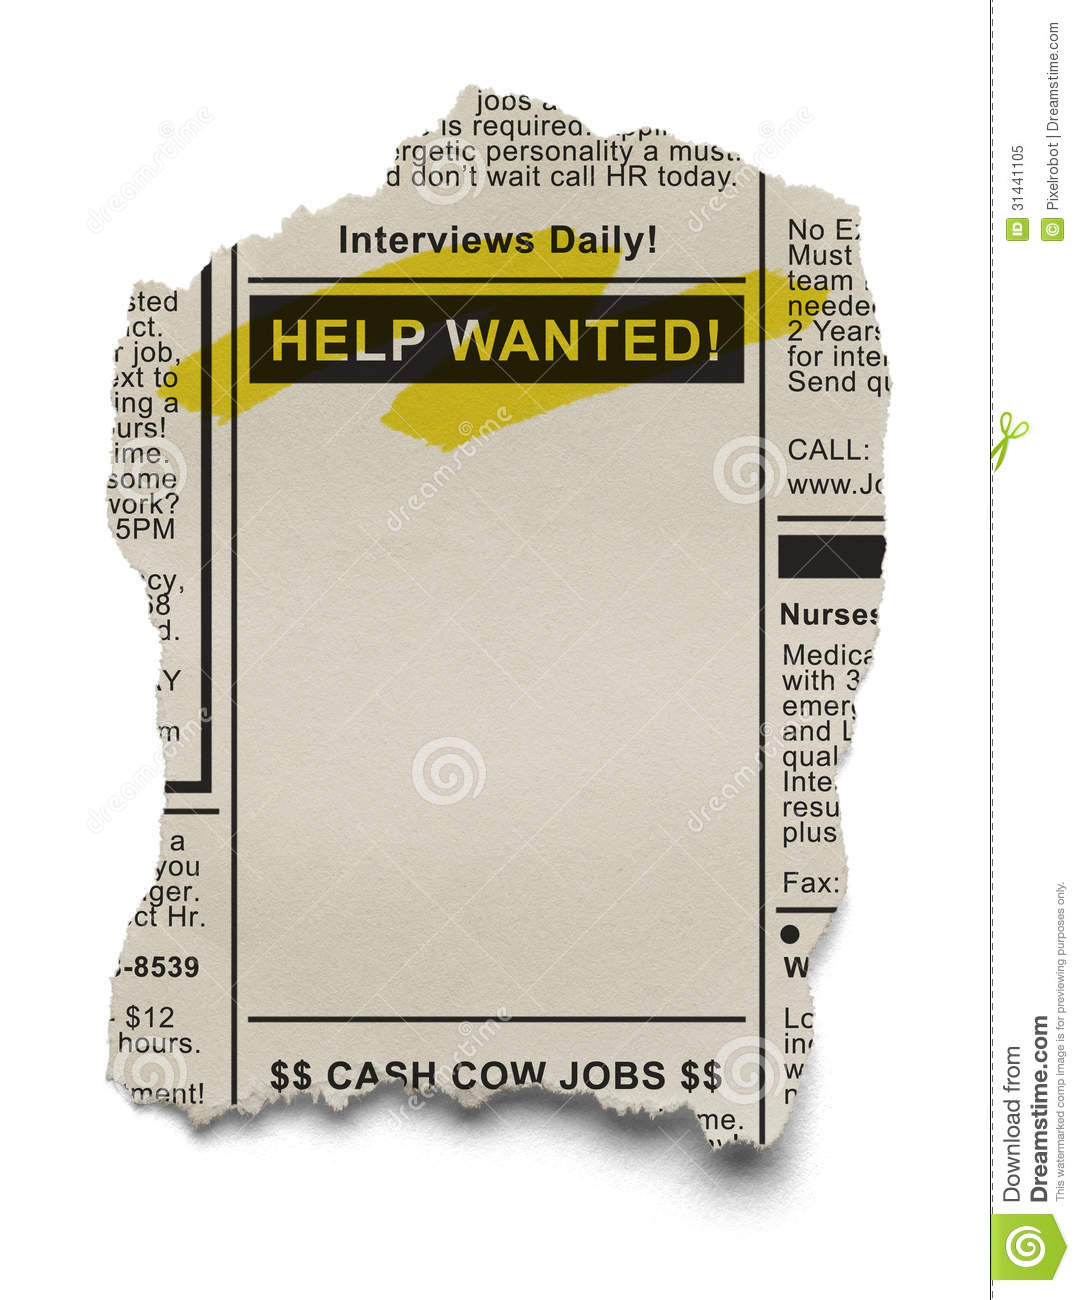 Advertisement clipart help wanted Help job Newspaper (58+) classified